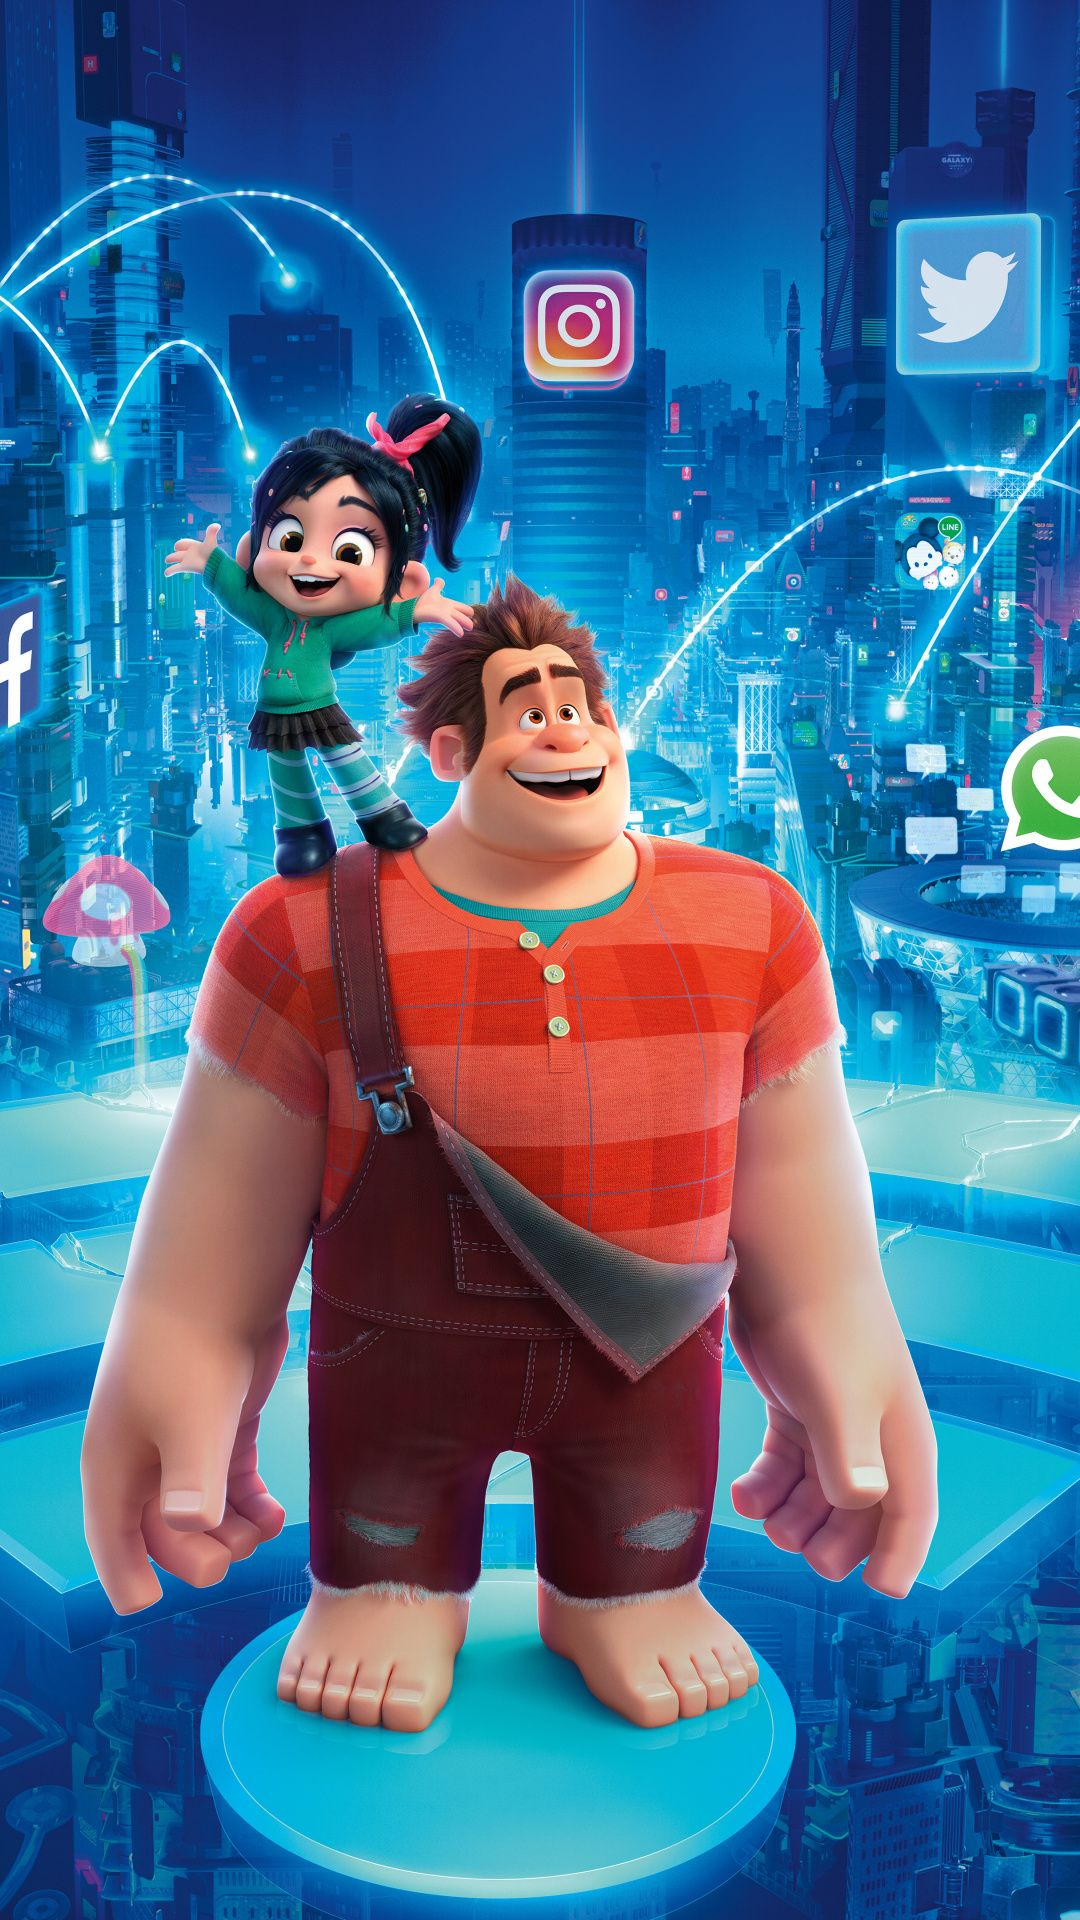 Animation Movie Ralph Breaks The Internet 2018 1080x1920